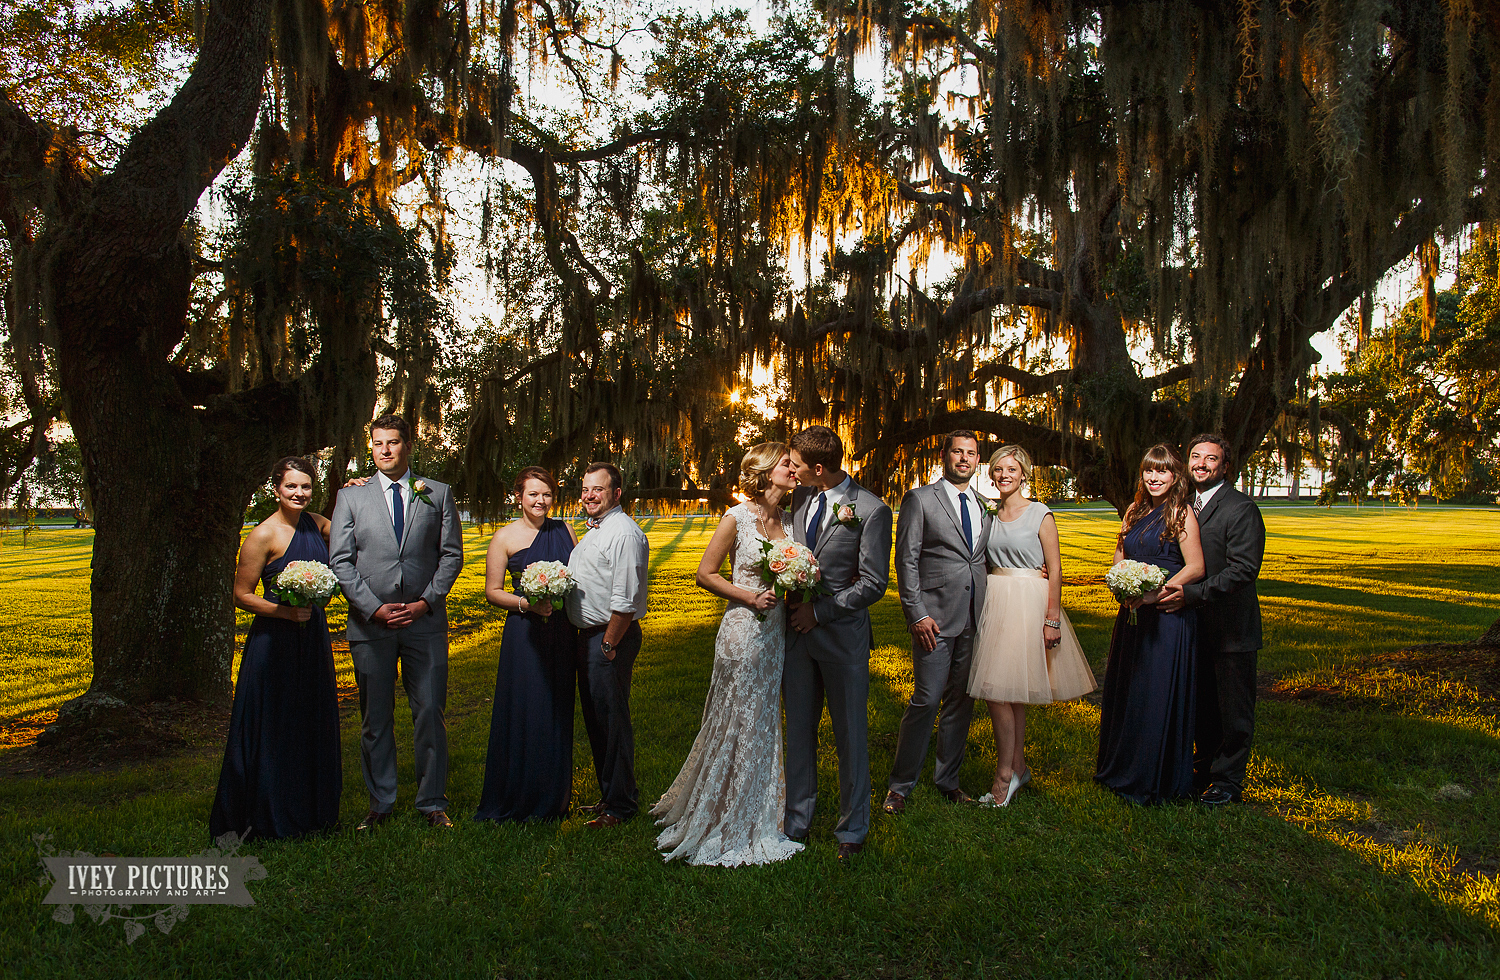 Wedding party at sunset